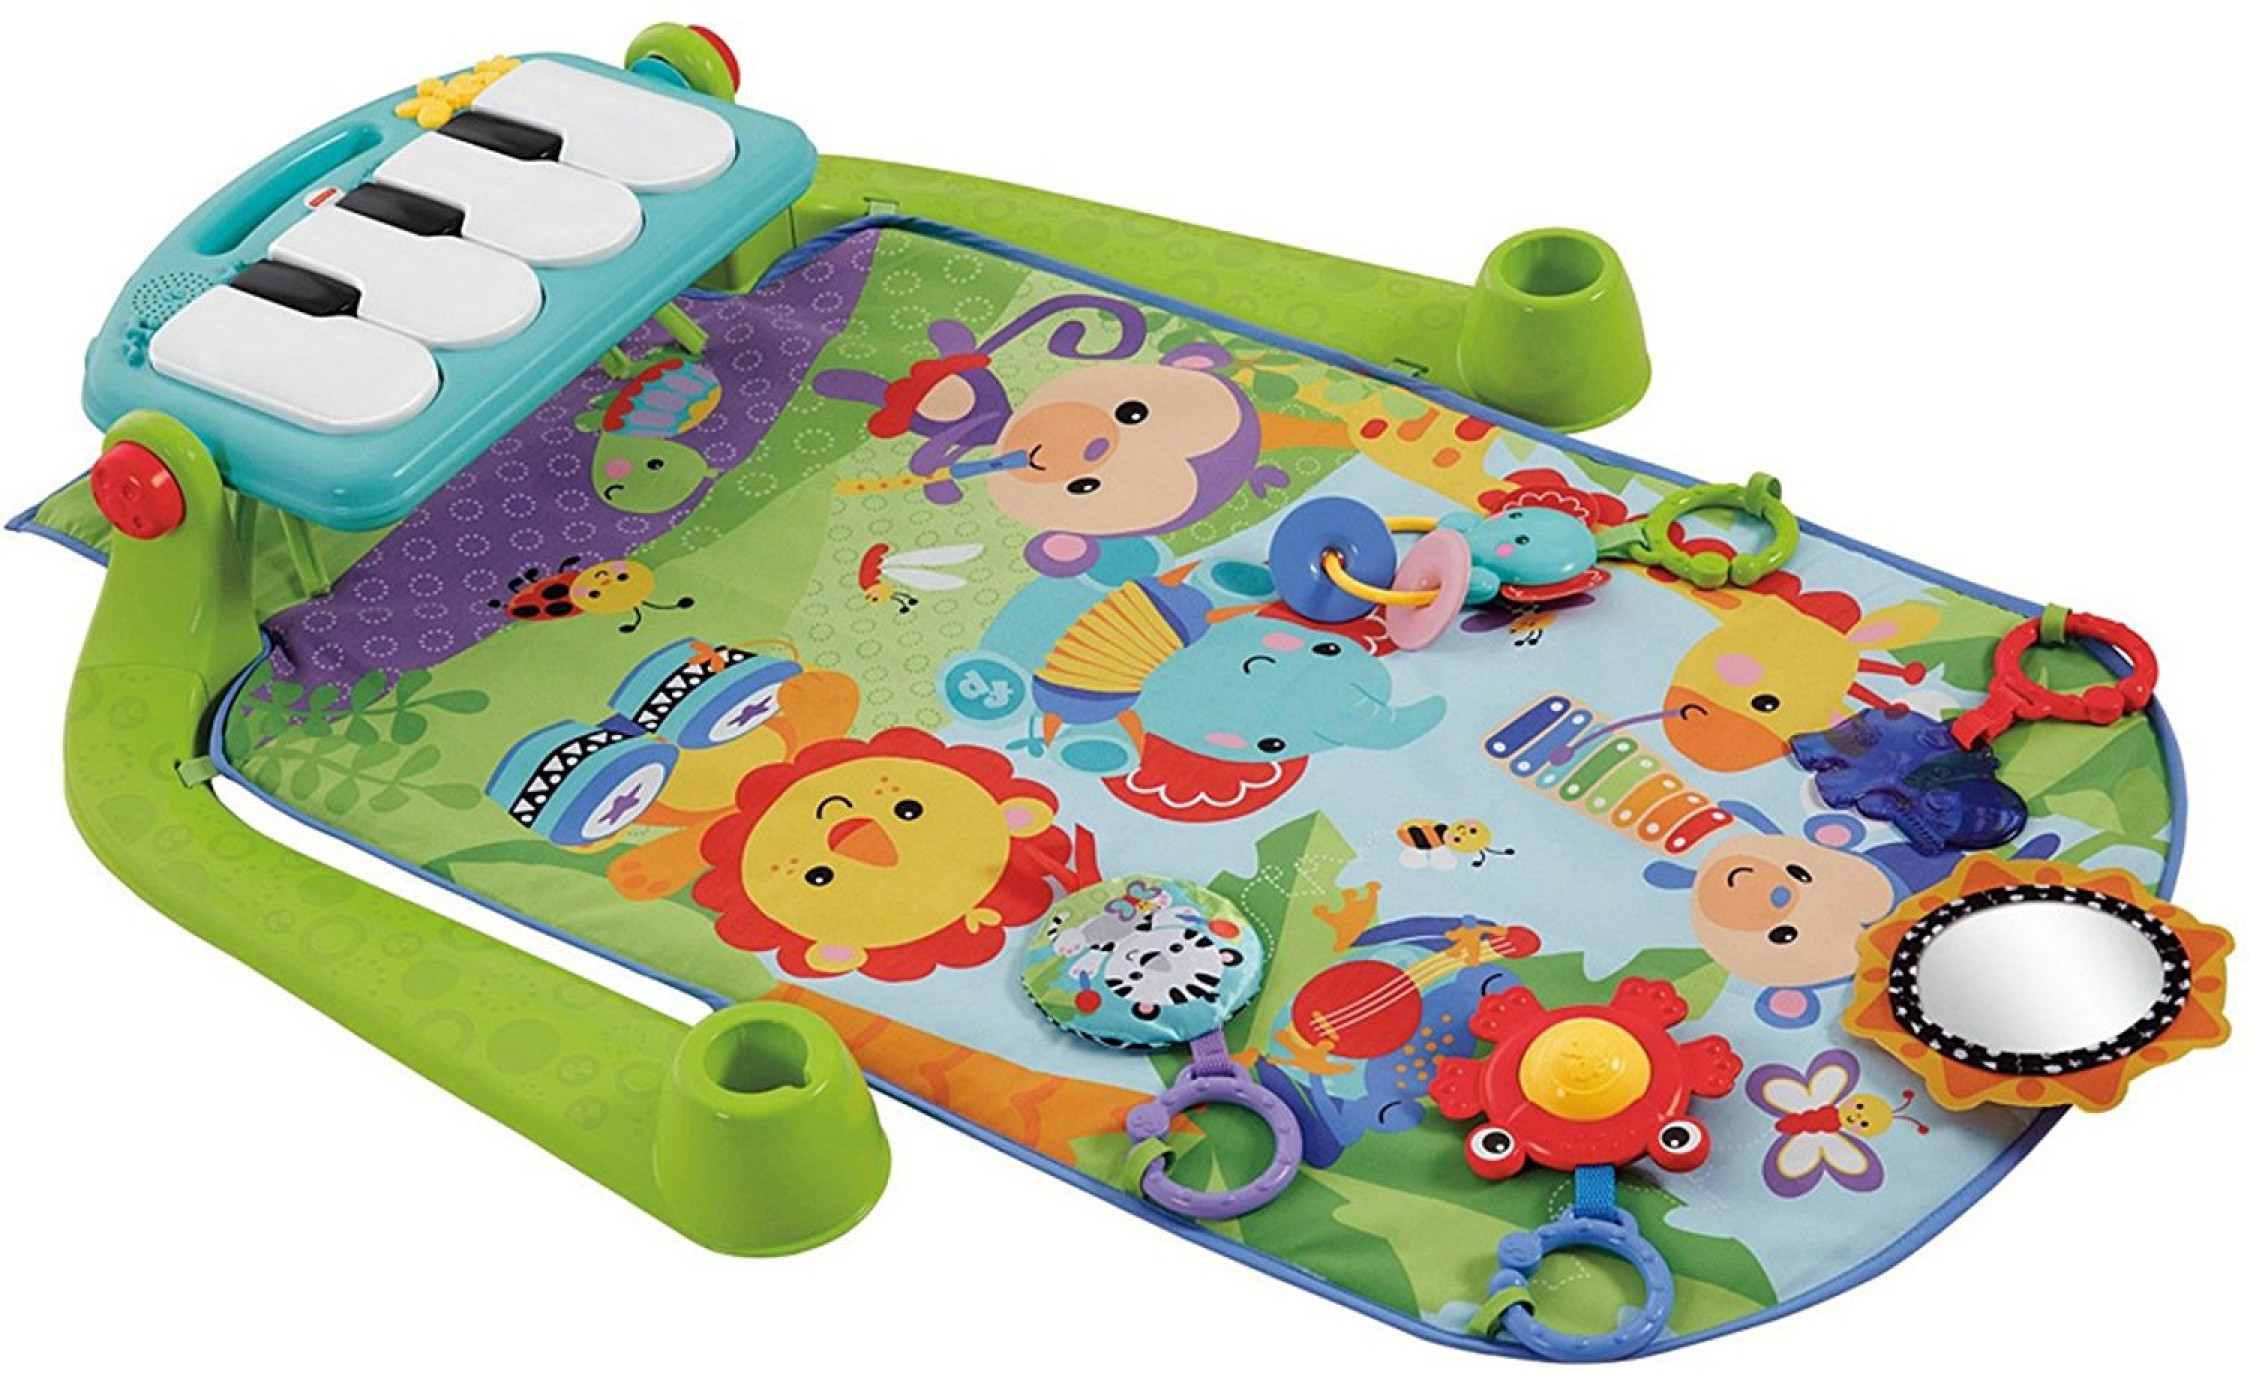 Fisher Price Kick And Play Piano Gym Baby Activity Playmat